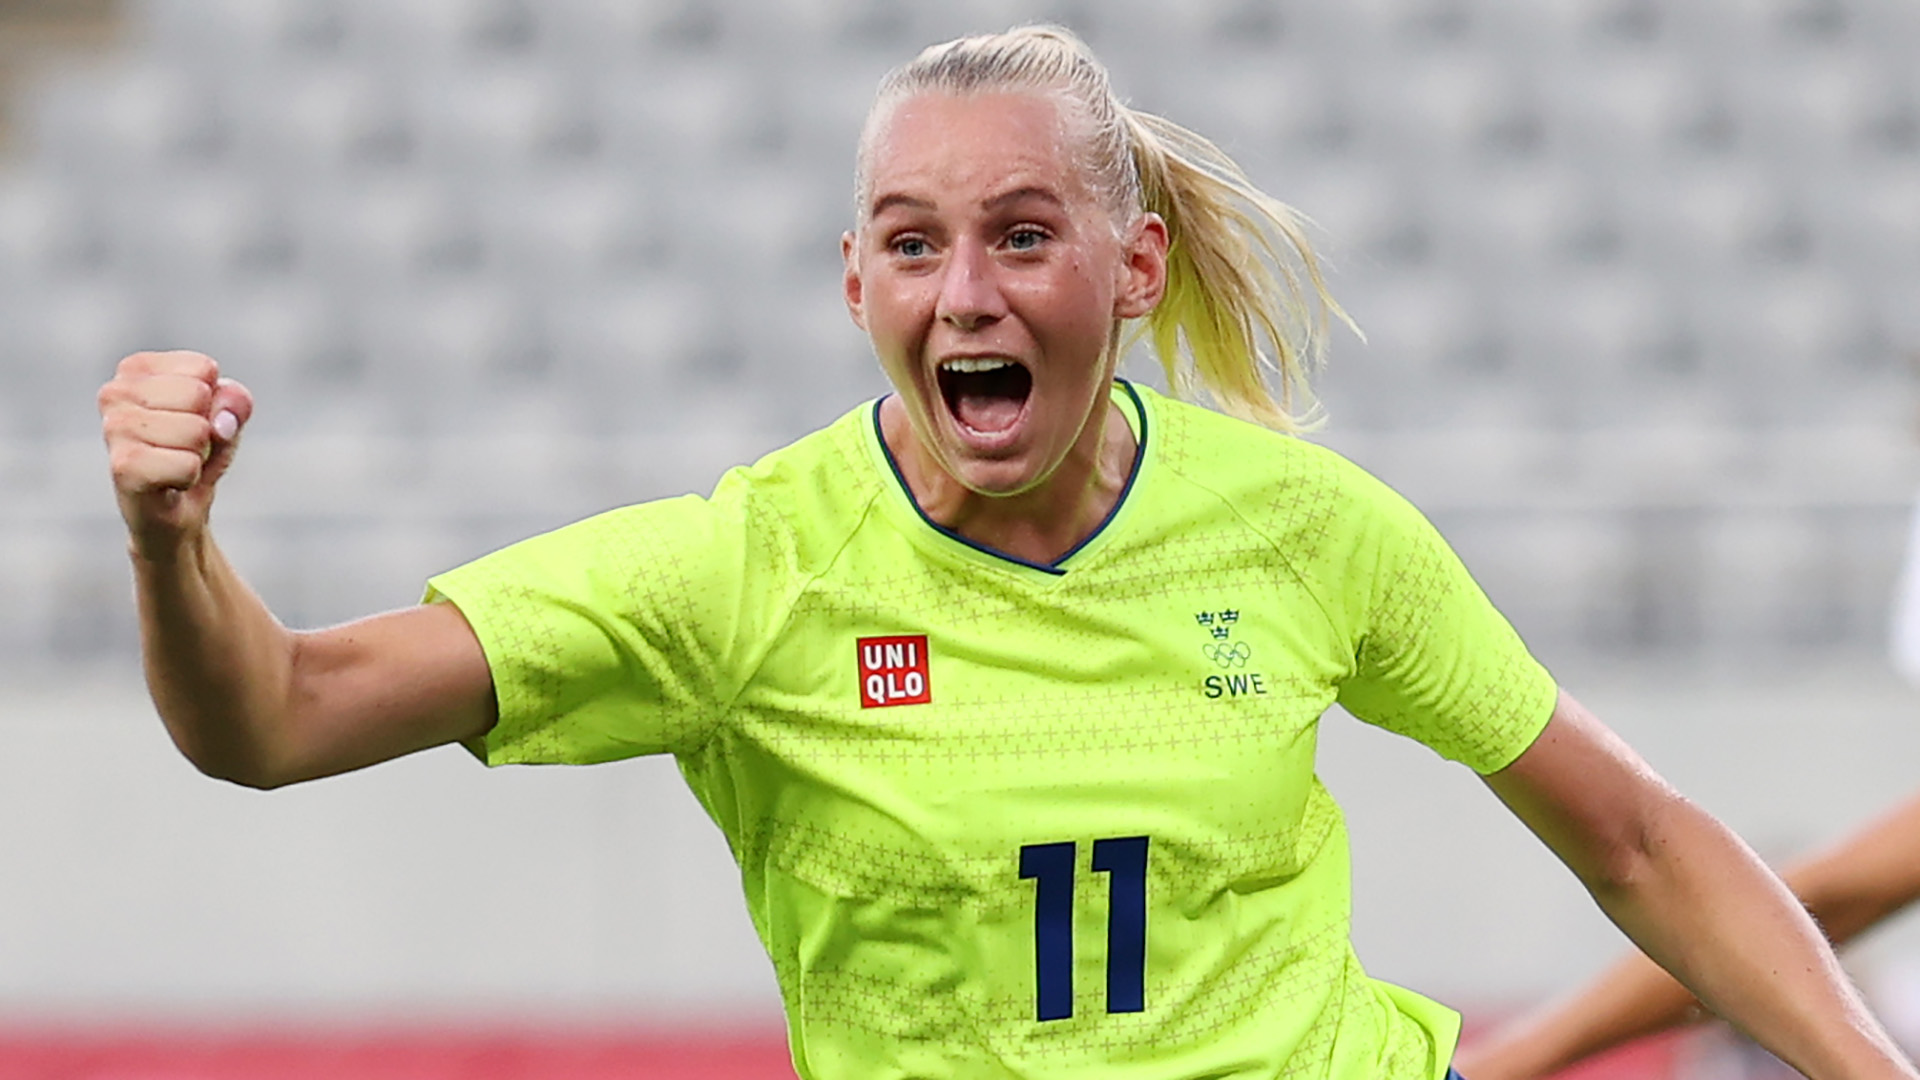 Sweden vs Australia & Olympics Women's soccer: TV channel, live stream, team news & matchday two preview